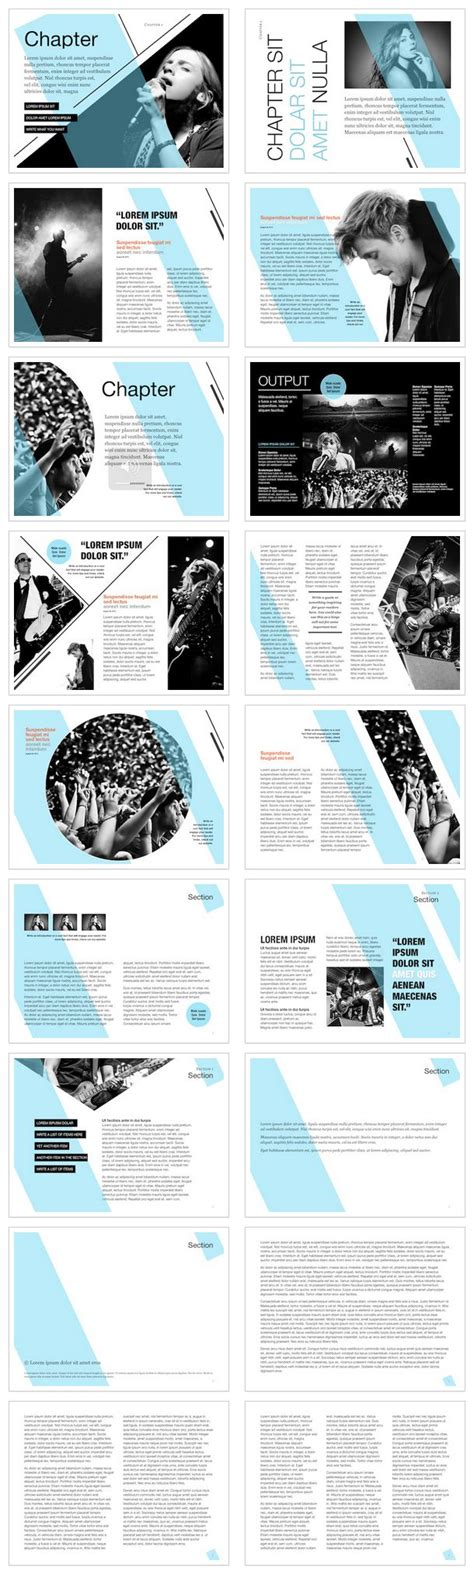 graphic design page layout ideas 658 best design edition mise en page images on